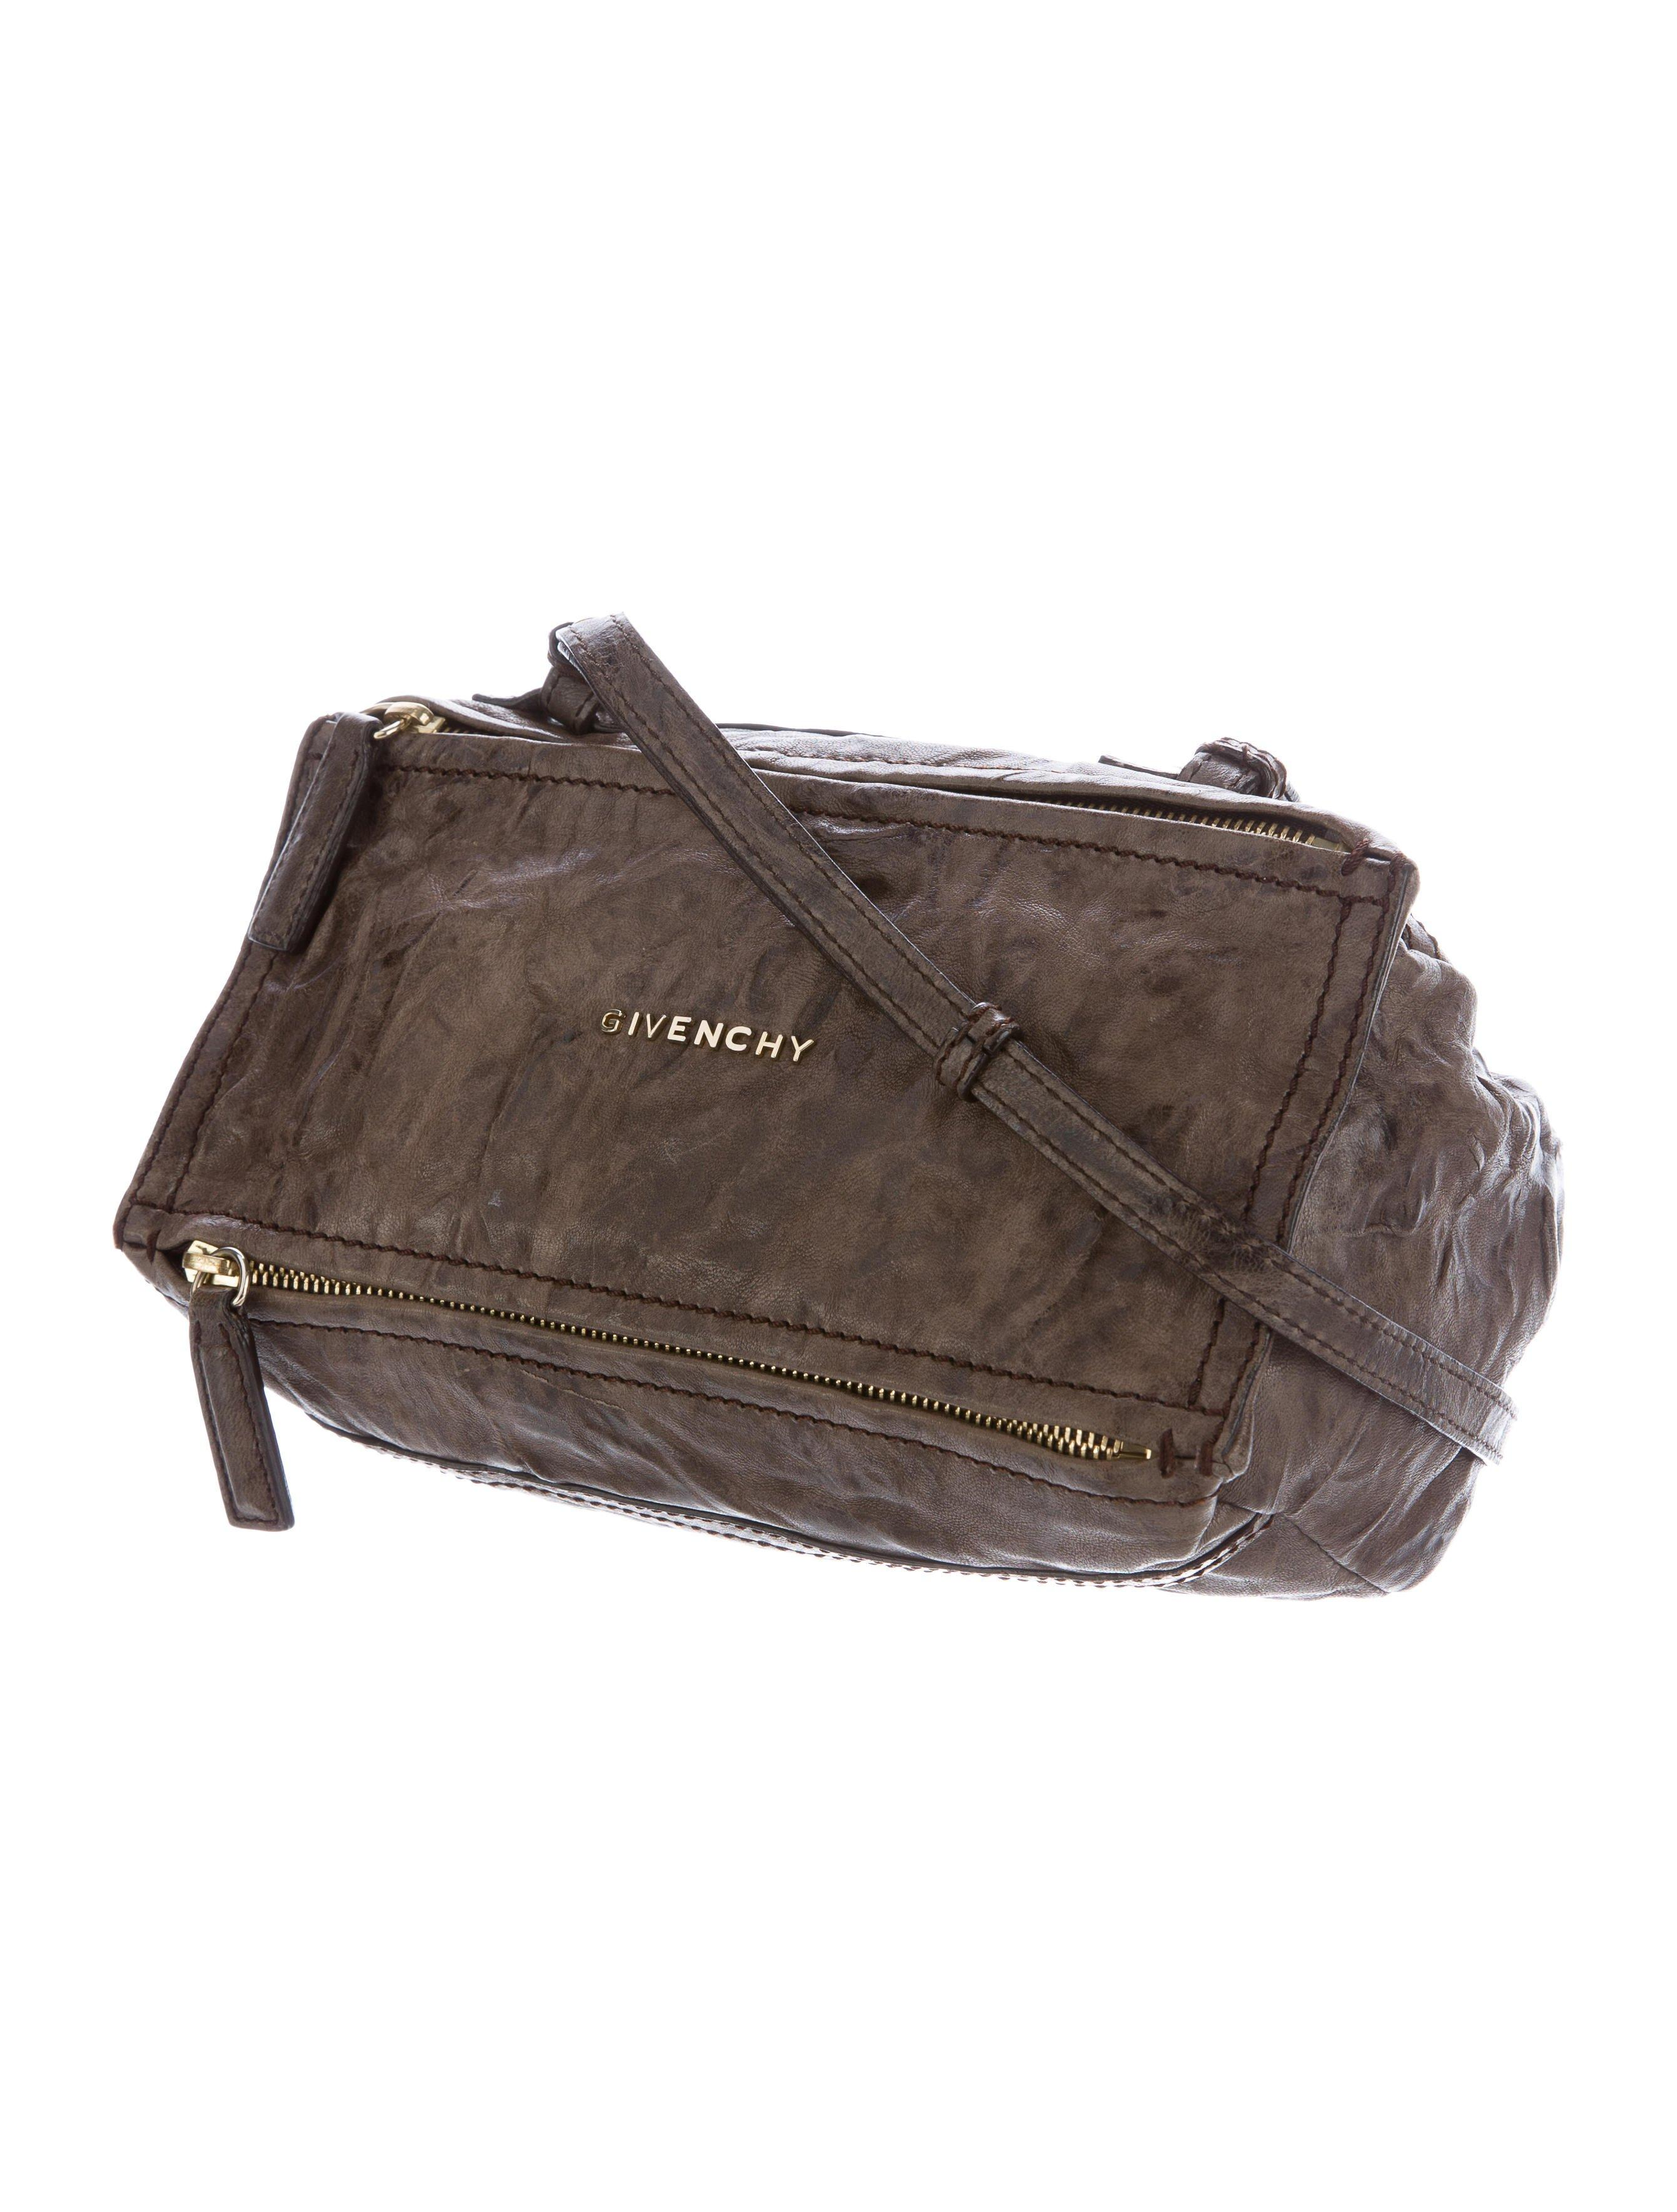 Lyst - Givenchy Mini Pepe Pandora Bag Brown in Metallic d4ceda812b